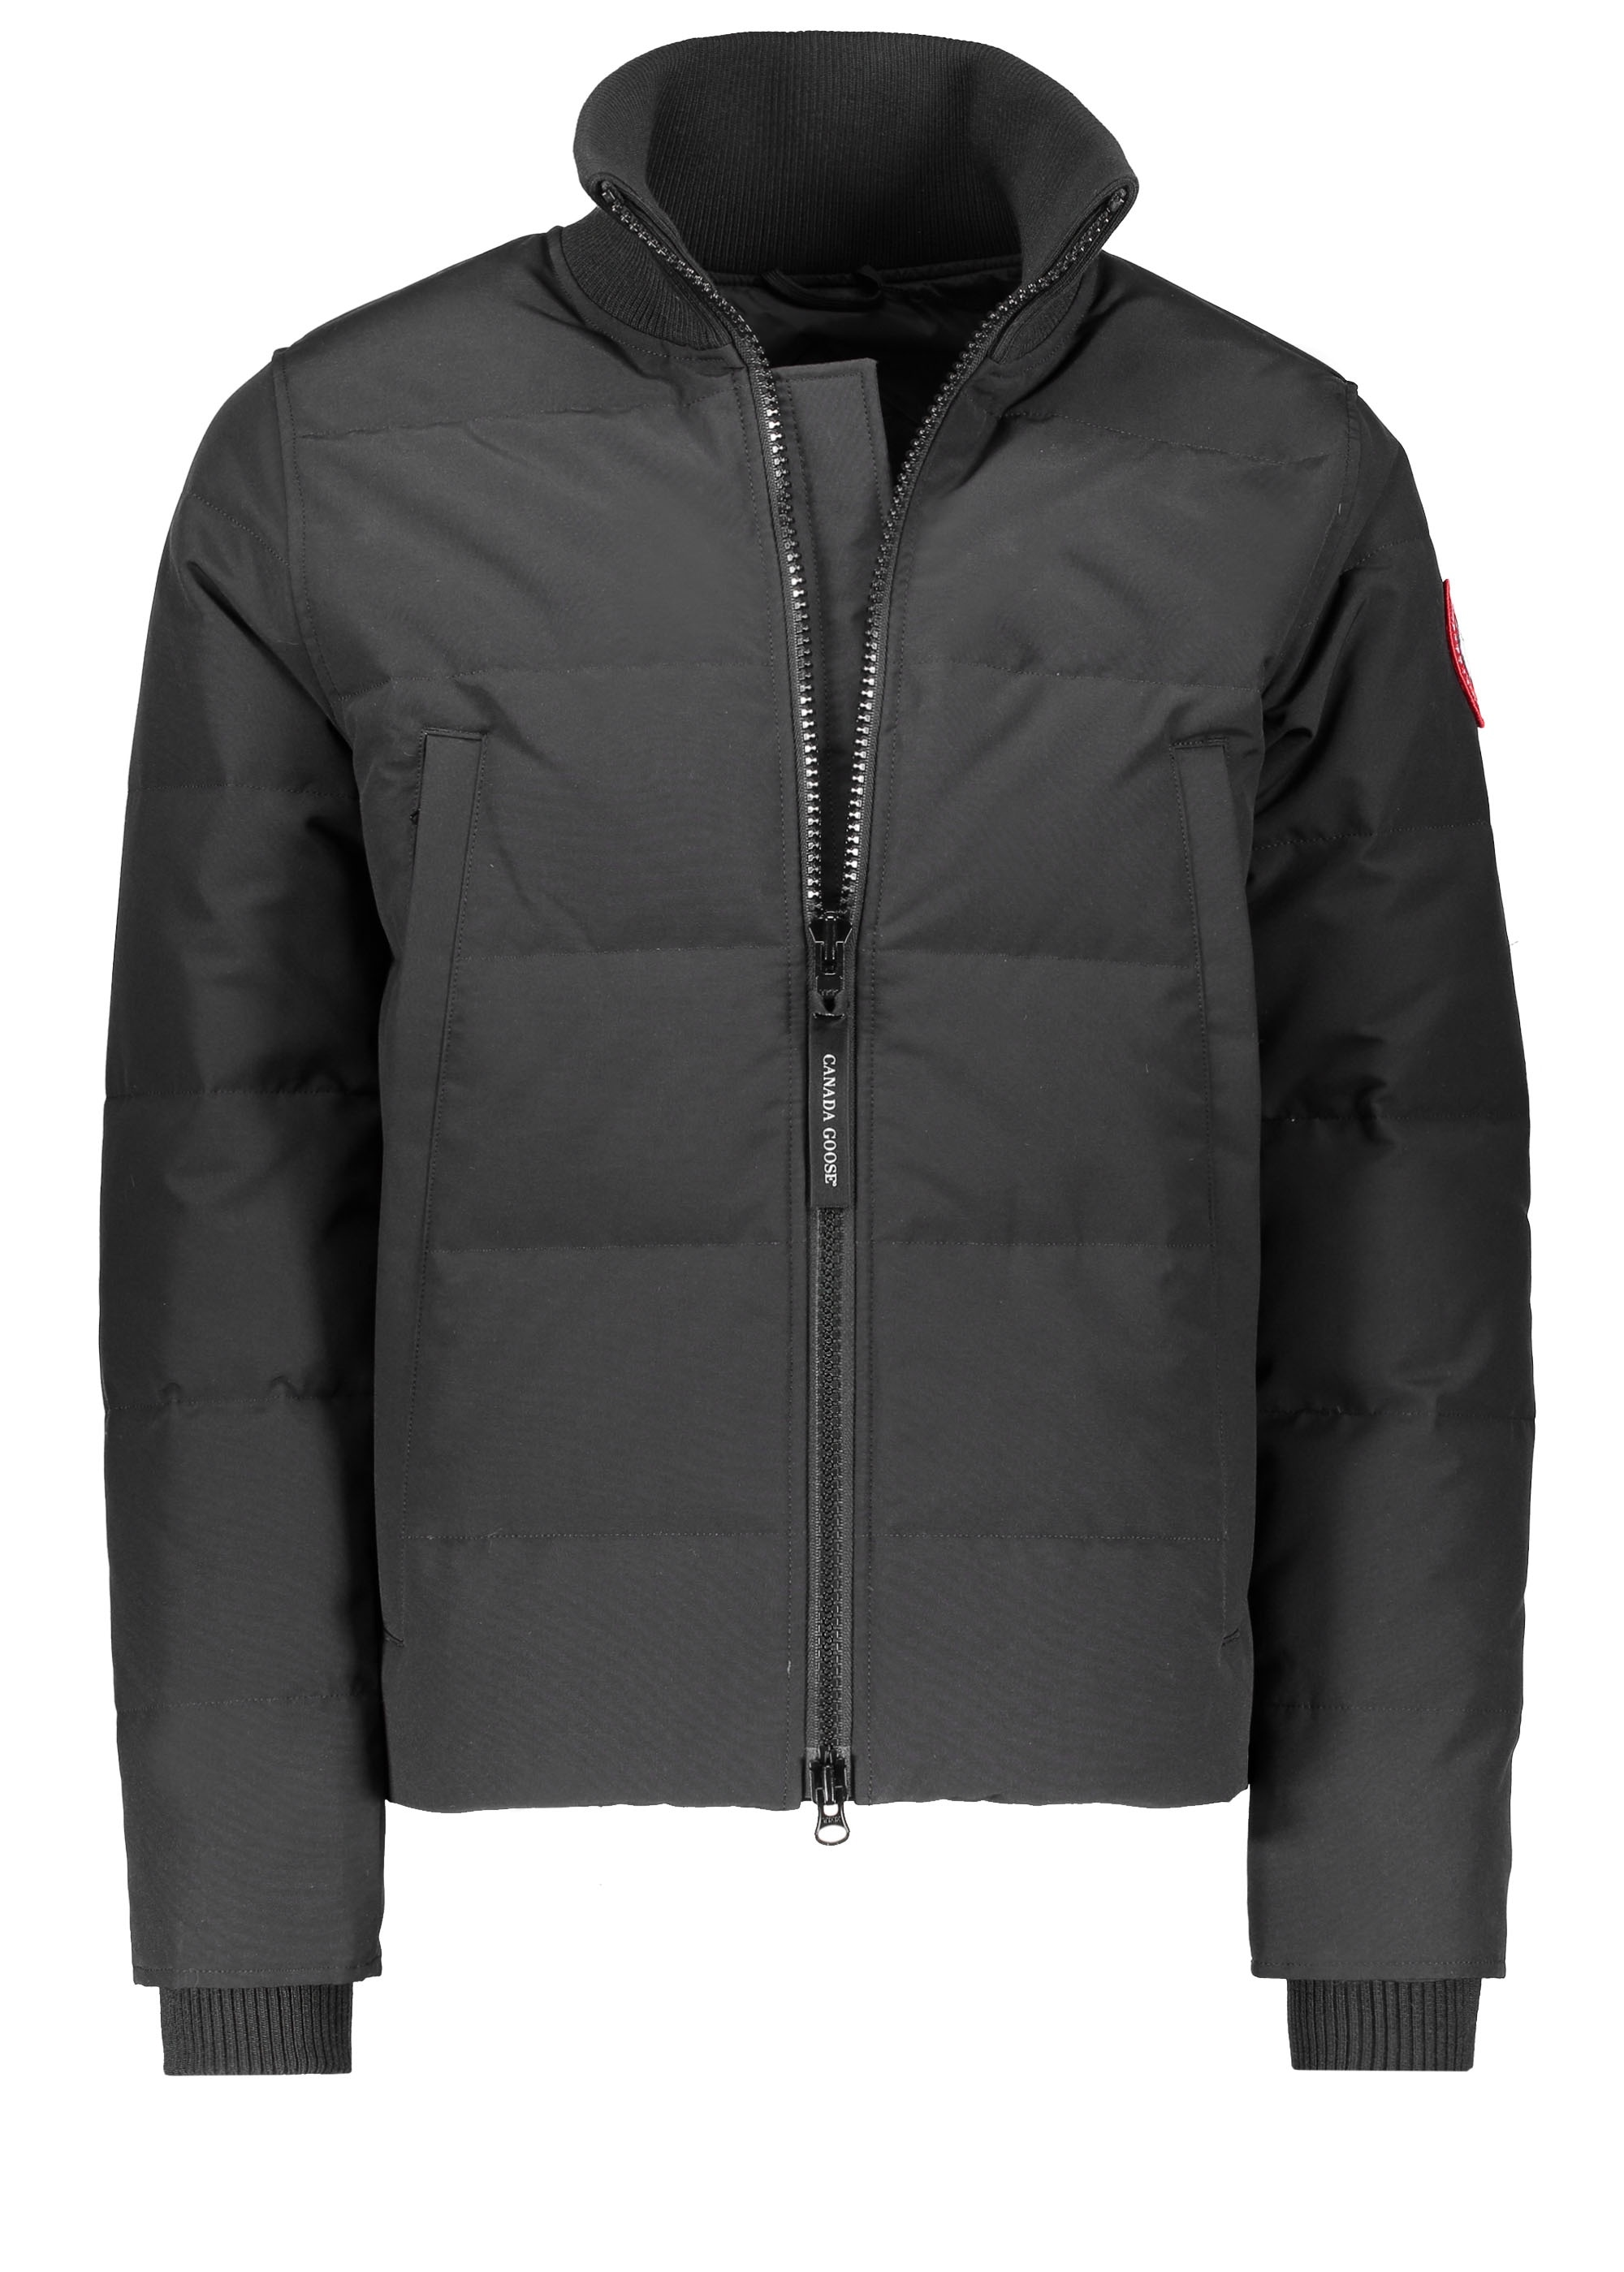 1e84bbf73f7 Canada Goose Woolford Jacket - Black - Jackets from Triads UK